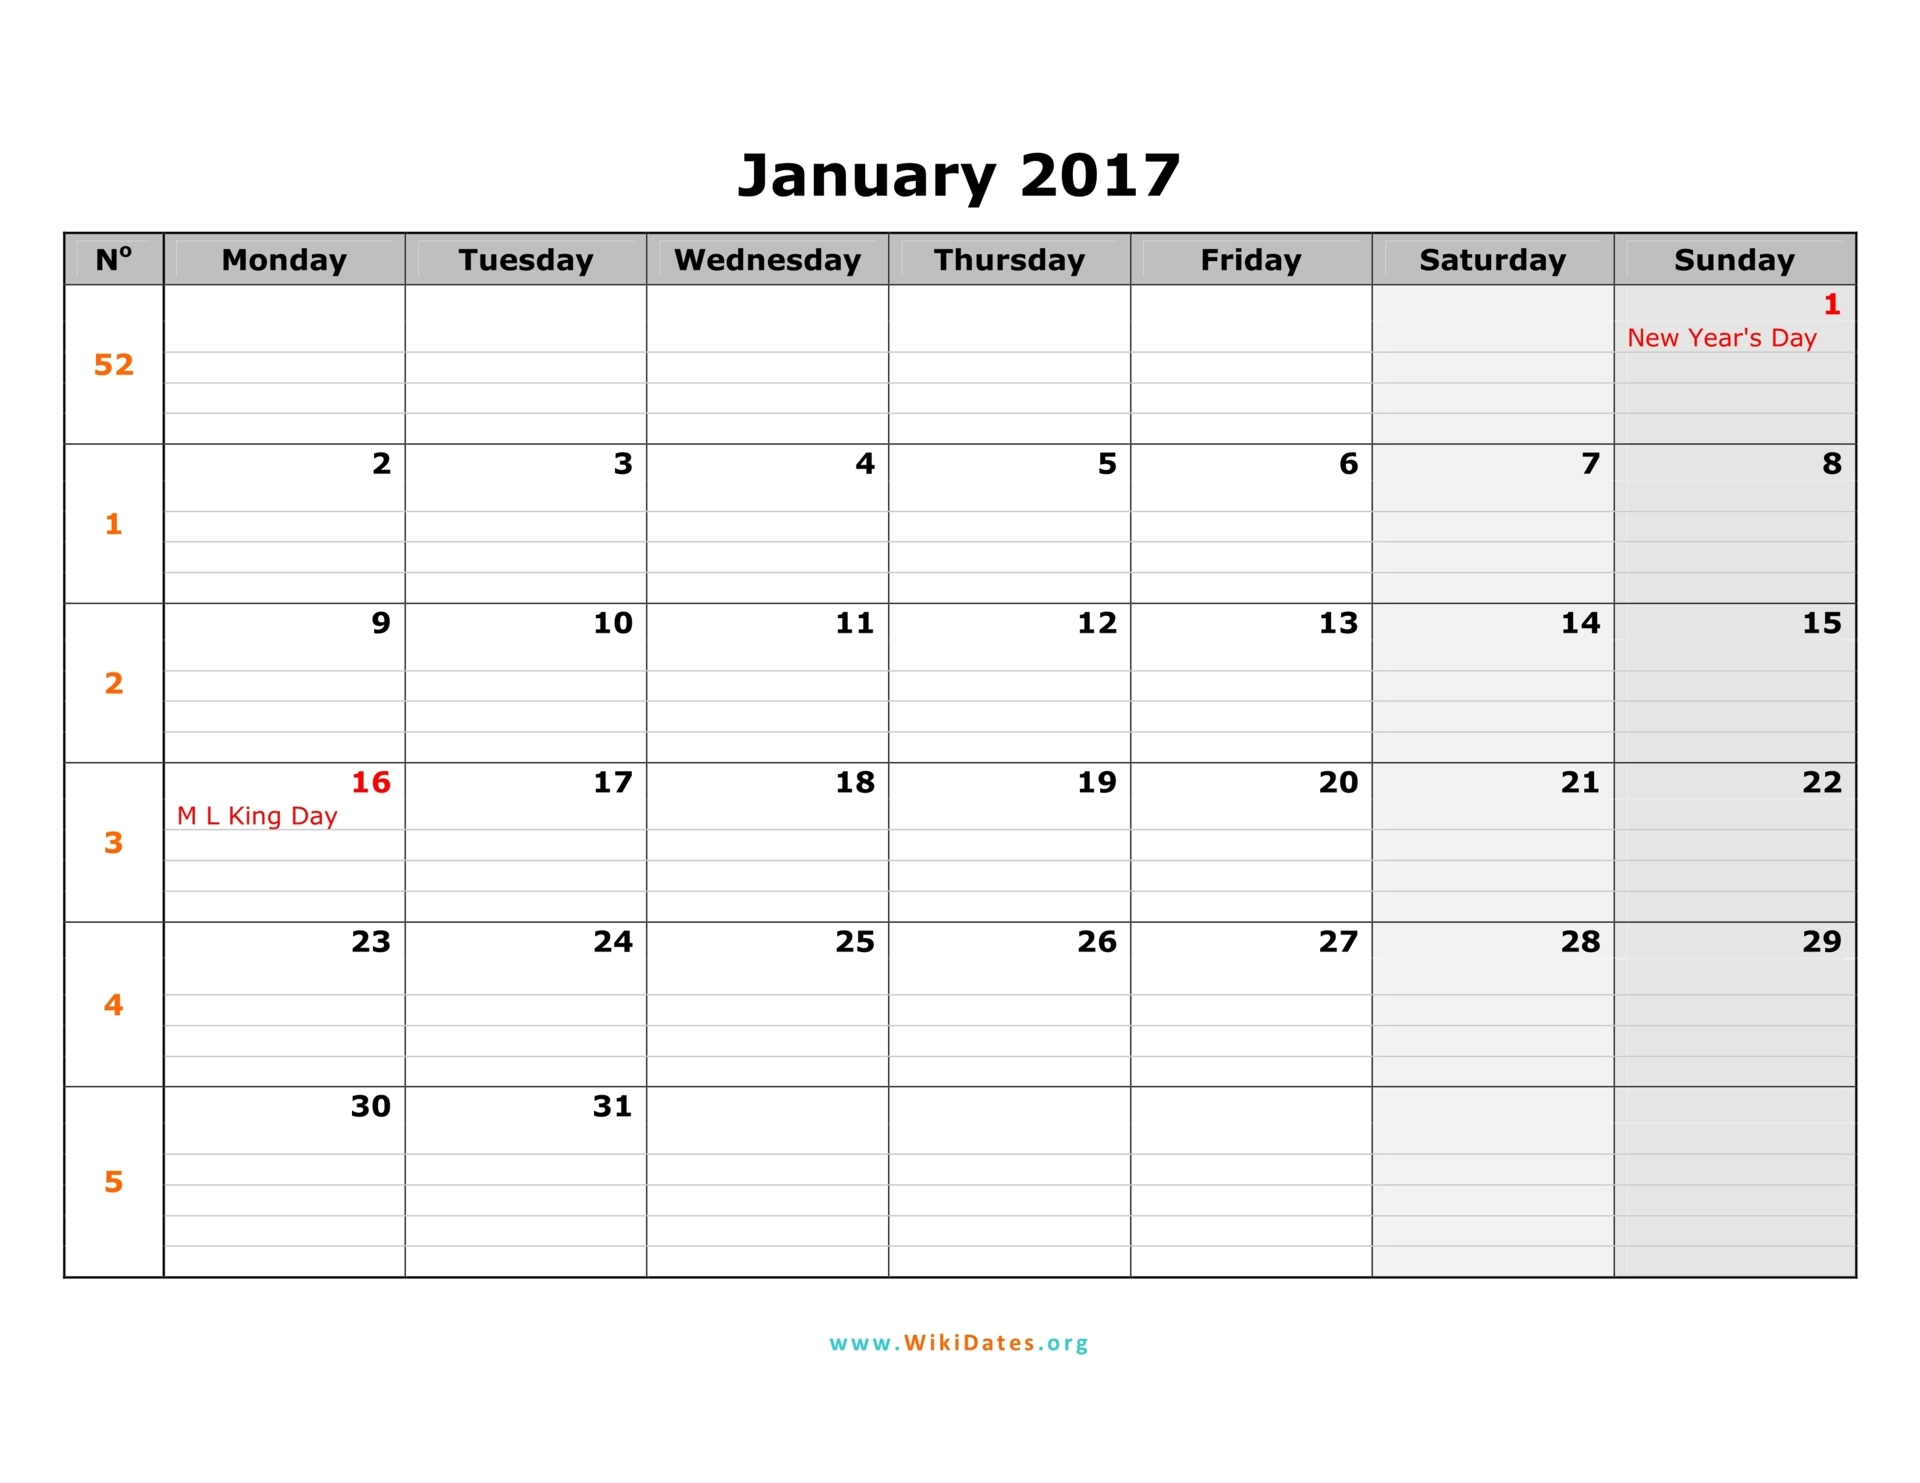 January 2017 Calendar | WikiDates.org